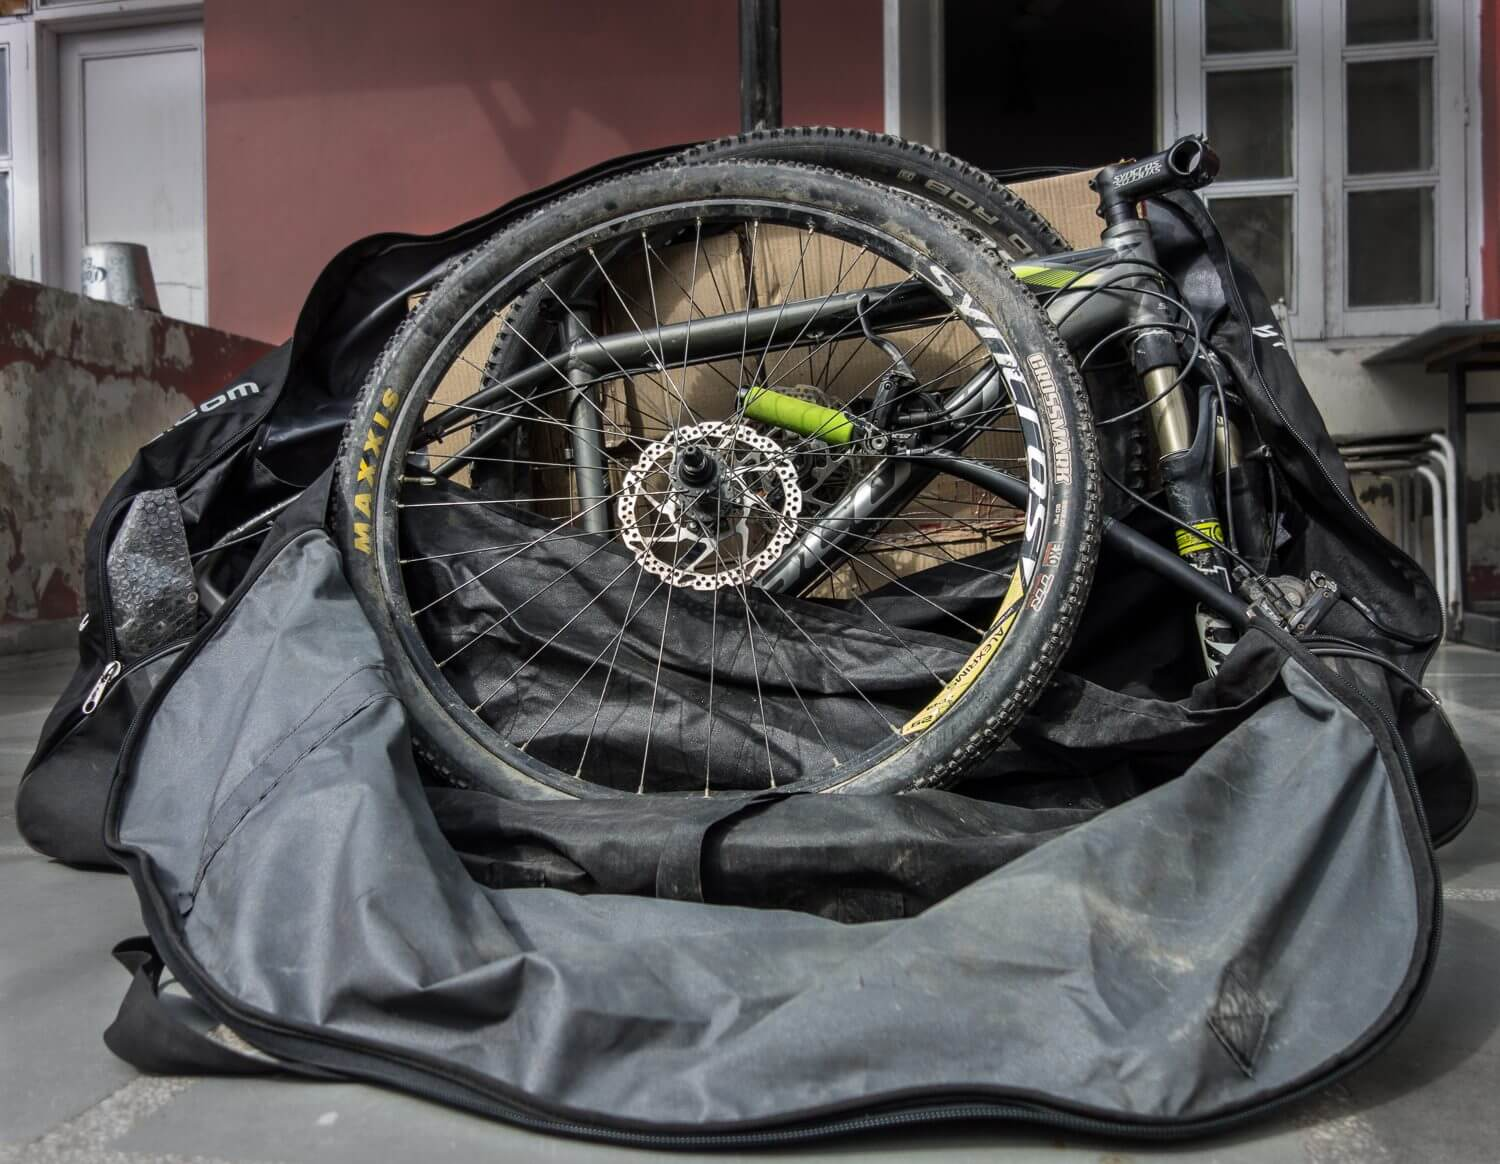 Btwin Bike transport bag with cycle inside